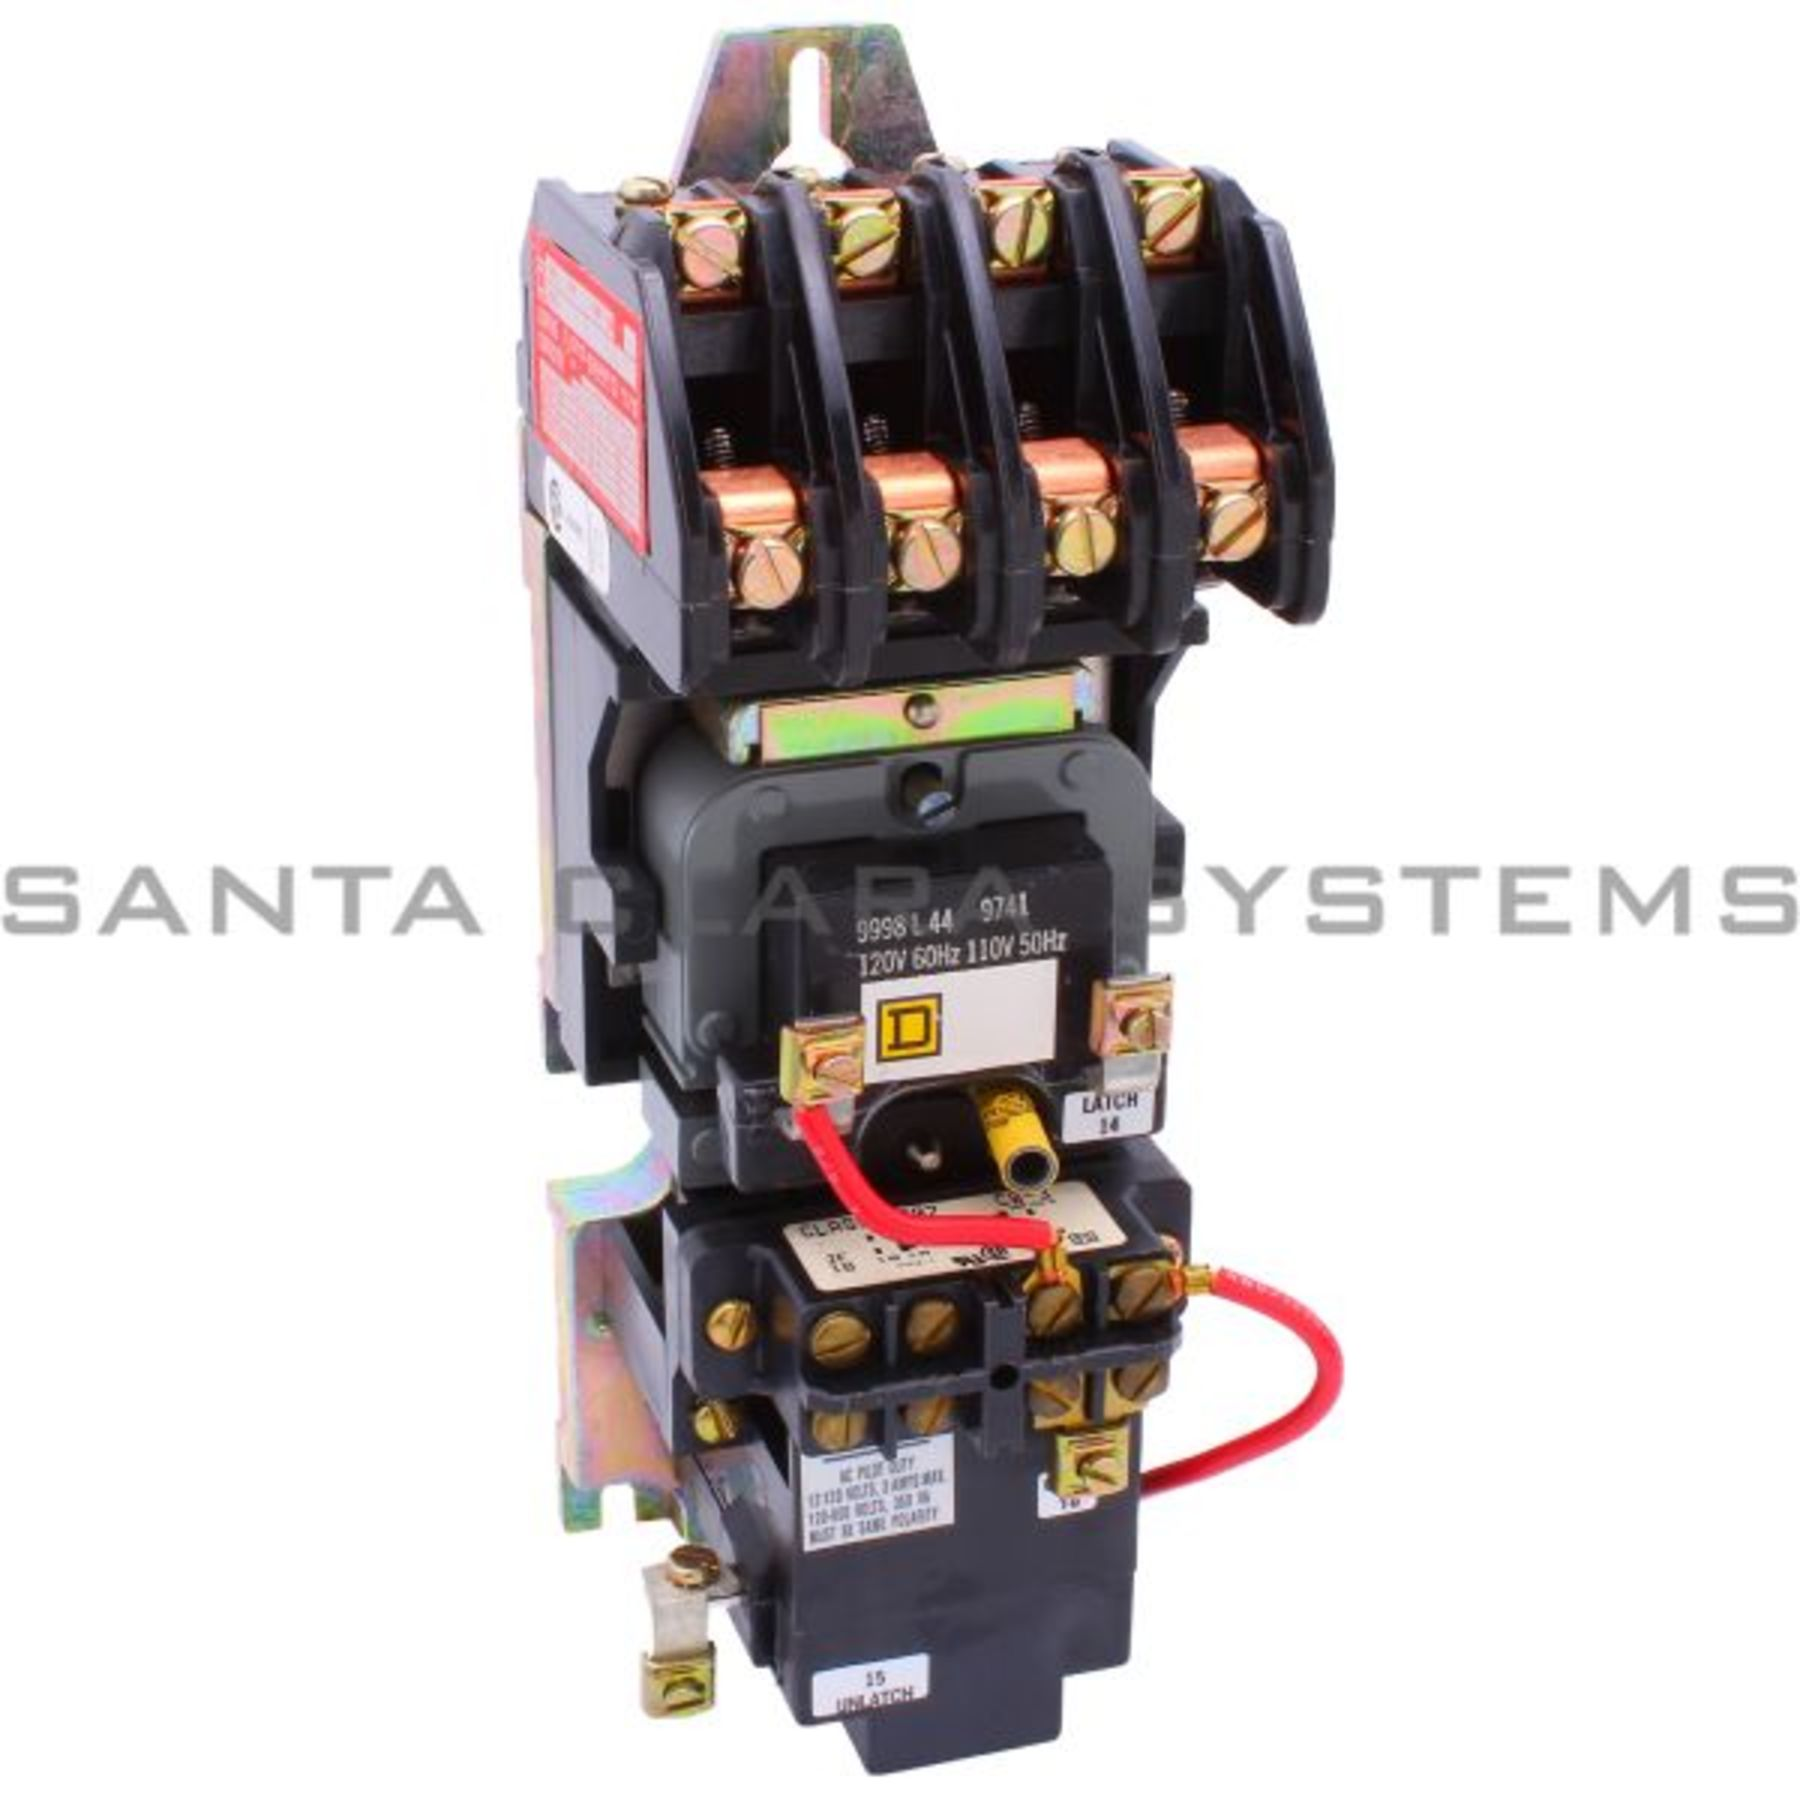 square d lighting contactor wiring 8903 lxo40v02 square d in stock and ready to ship santa clara  8903 lxo40v02 square d in stock and